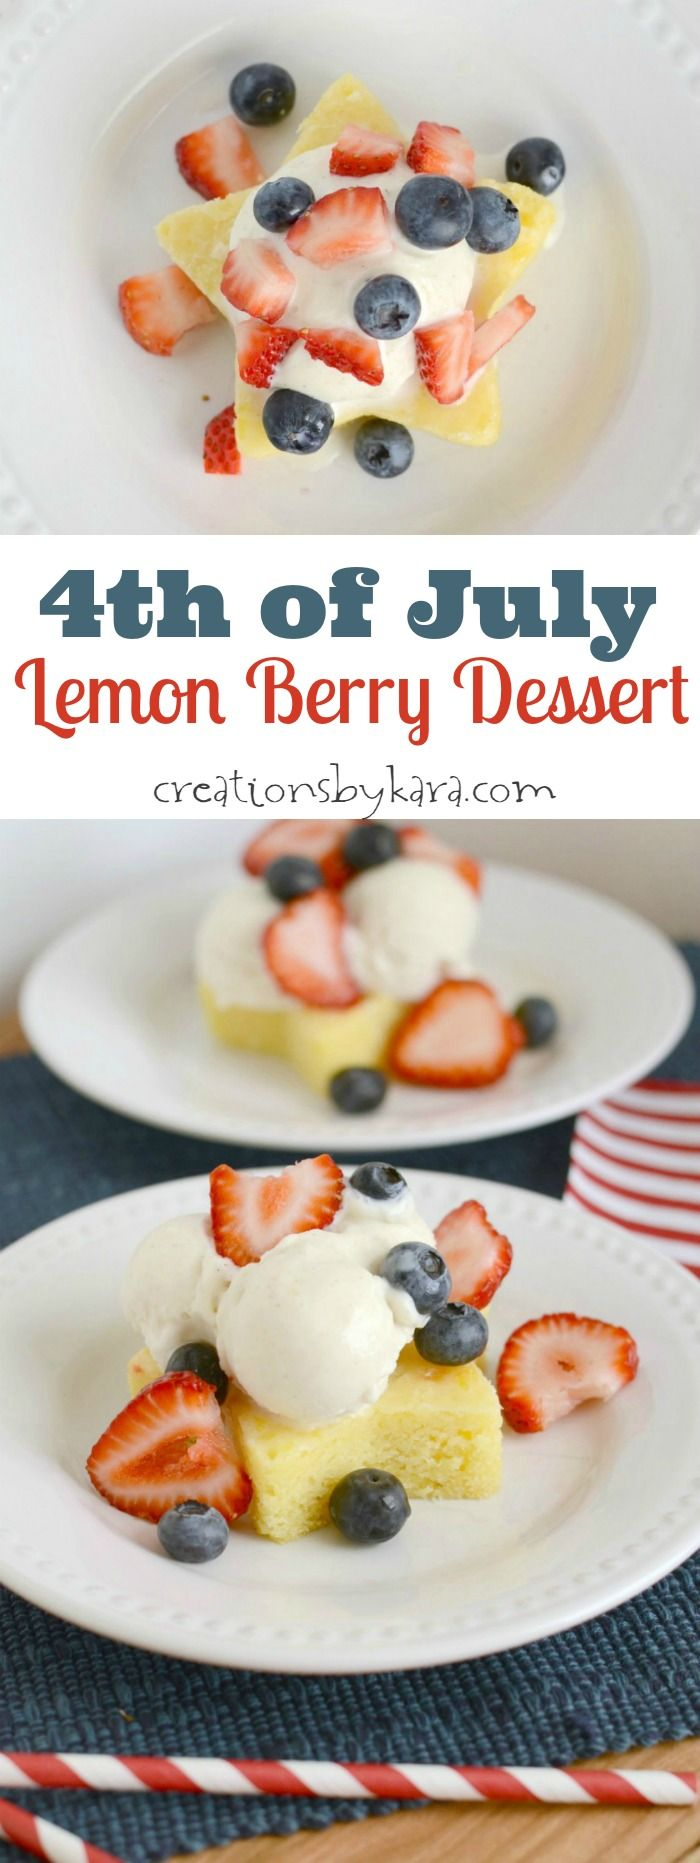 4th of July Lemon Berry Dessert- a perfect summer treat!